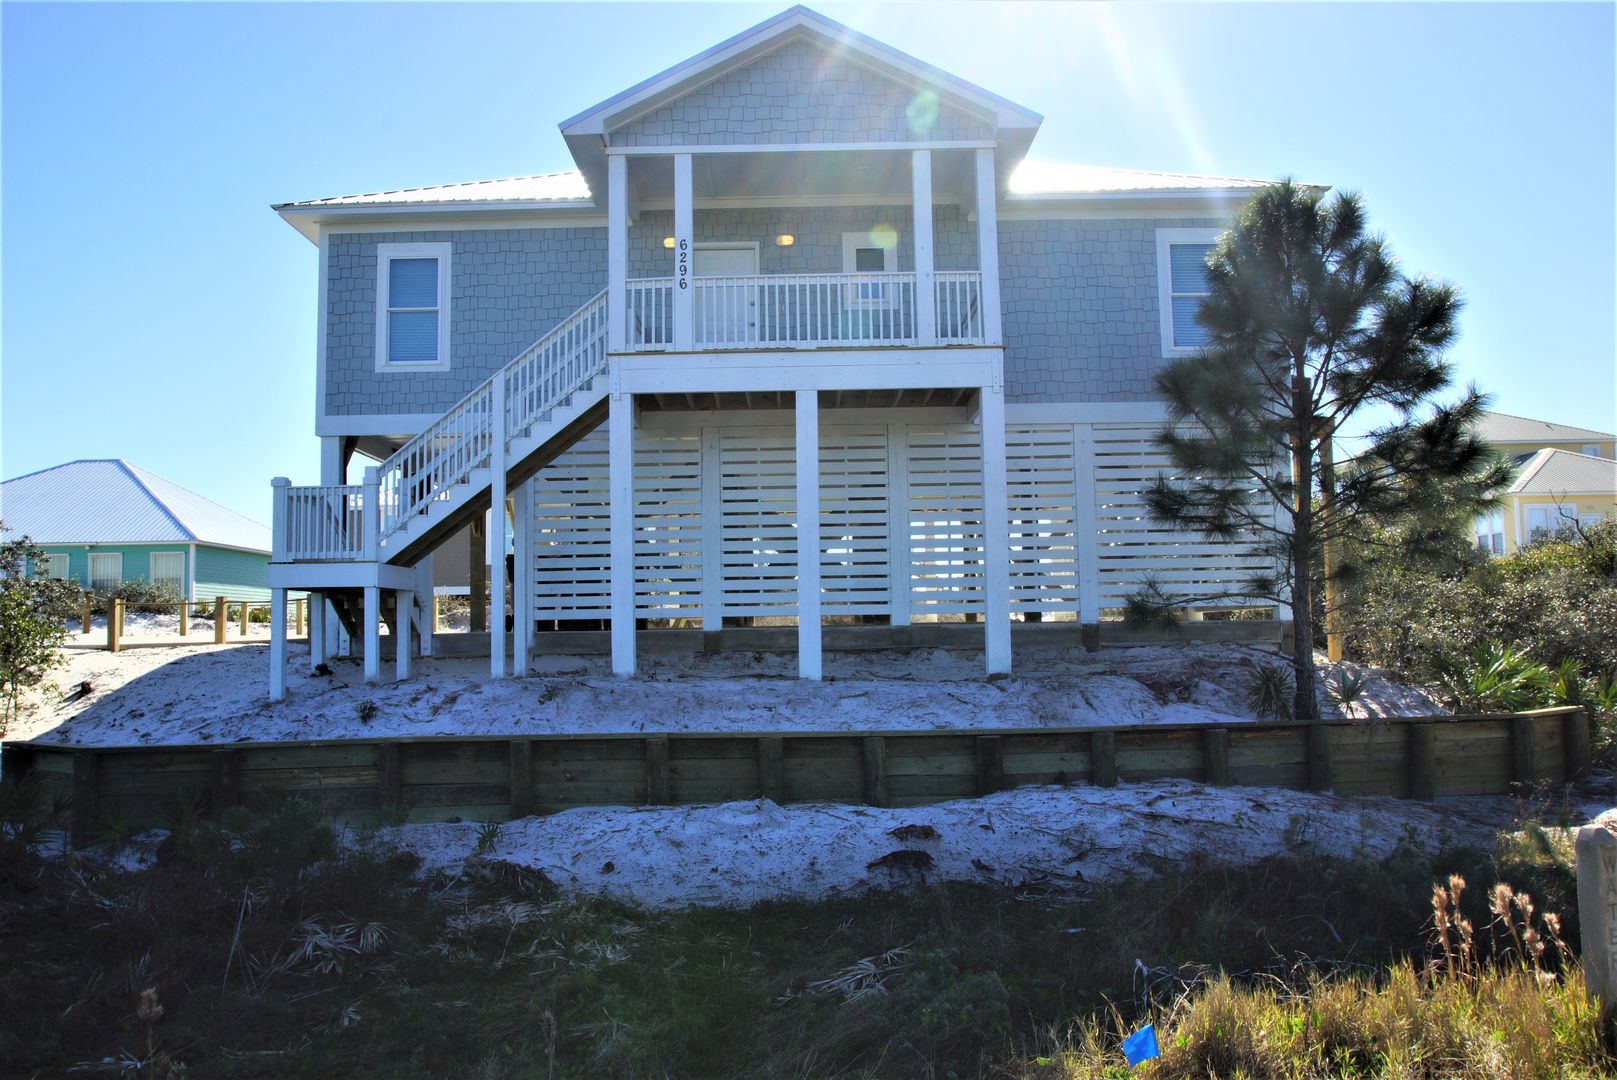 Welcome to Top Shelf, a popular Vacation Home For Rent In Gulf Shores, Alabama!